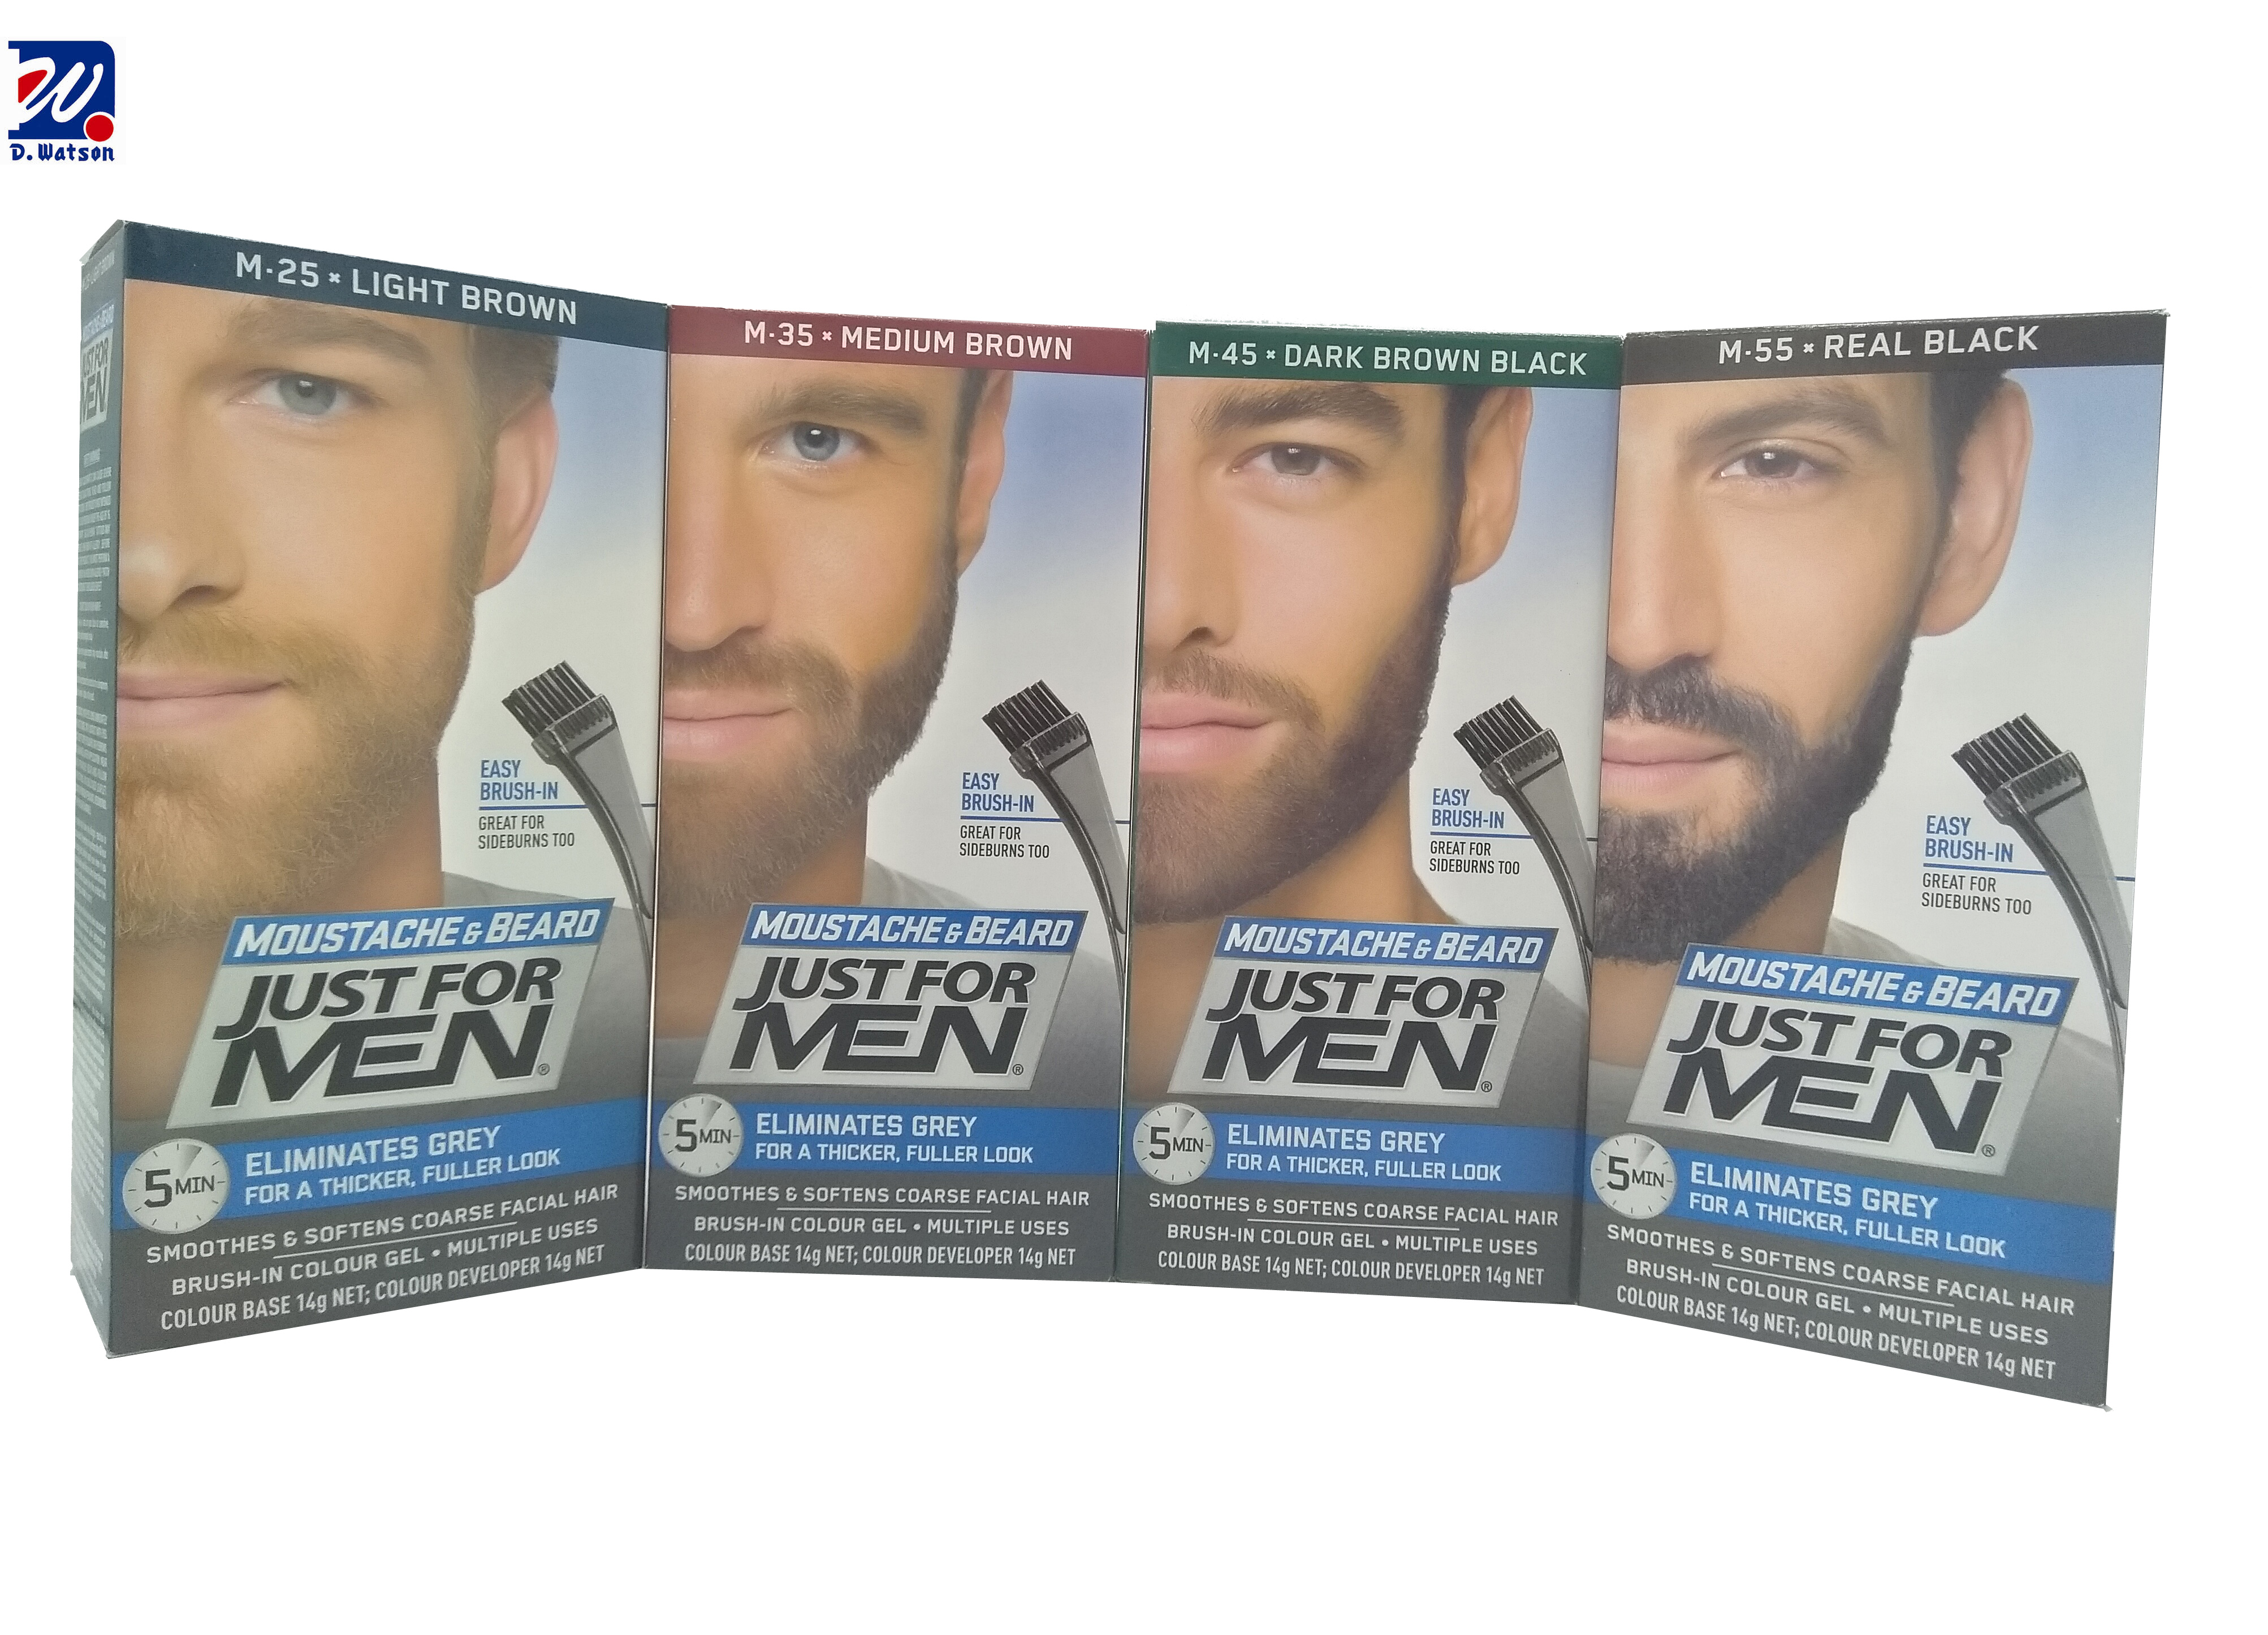 JUST FOR MEN BEARD COLOR